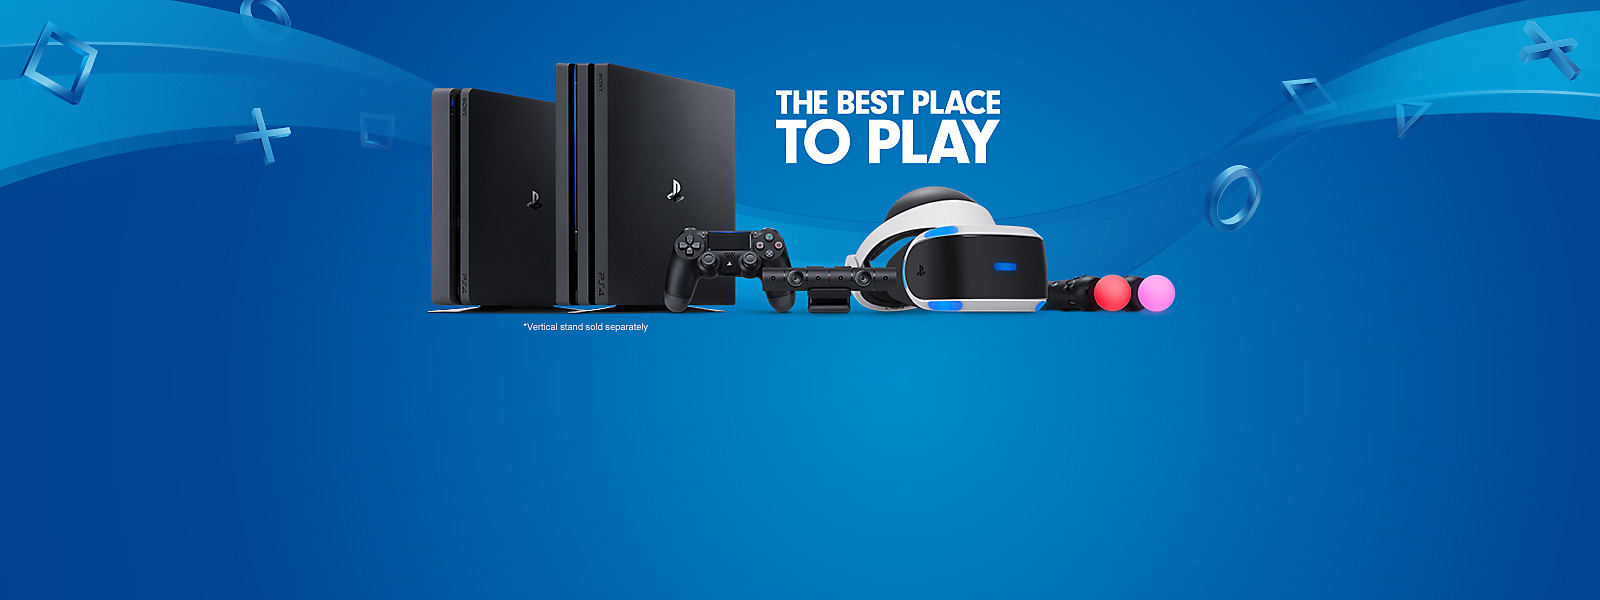 PlayStation hardware shot including PS4, PS4 Pro, and PlayStation VR